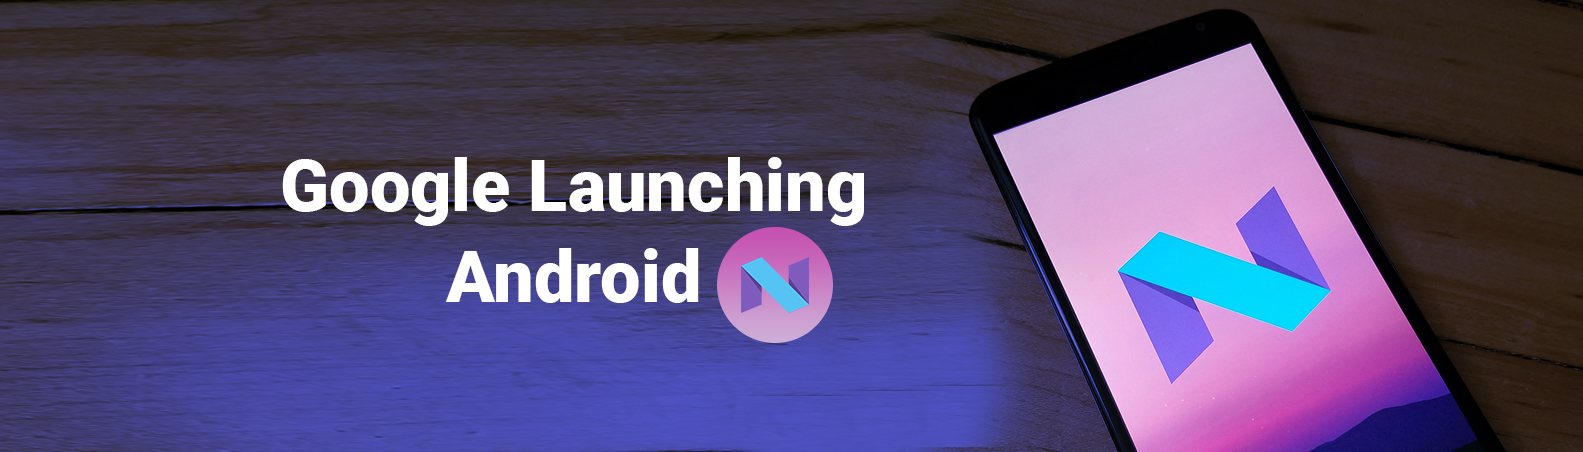 Android 7.0 Nougat Release,Review - Android Nougat